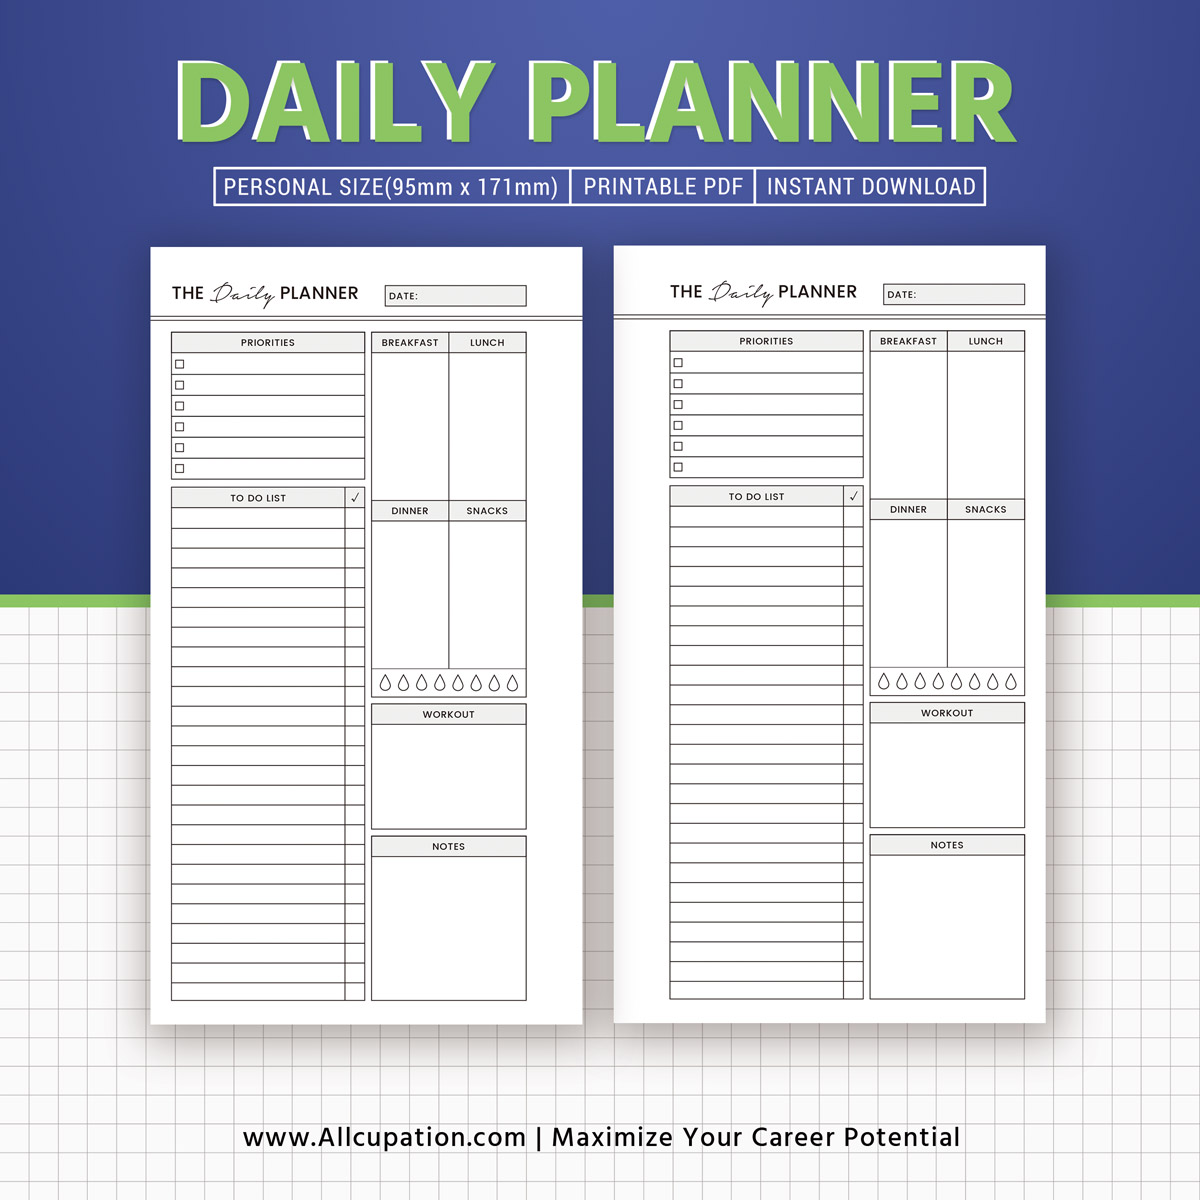 Personal daily planner plum paper planner free online for Daily planner maker